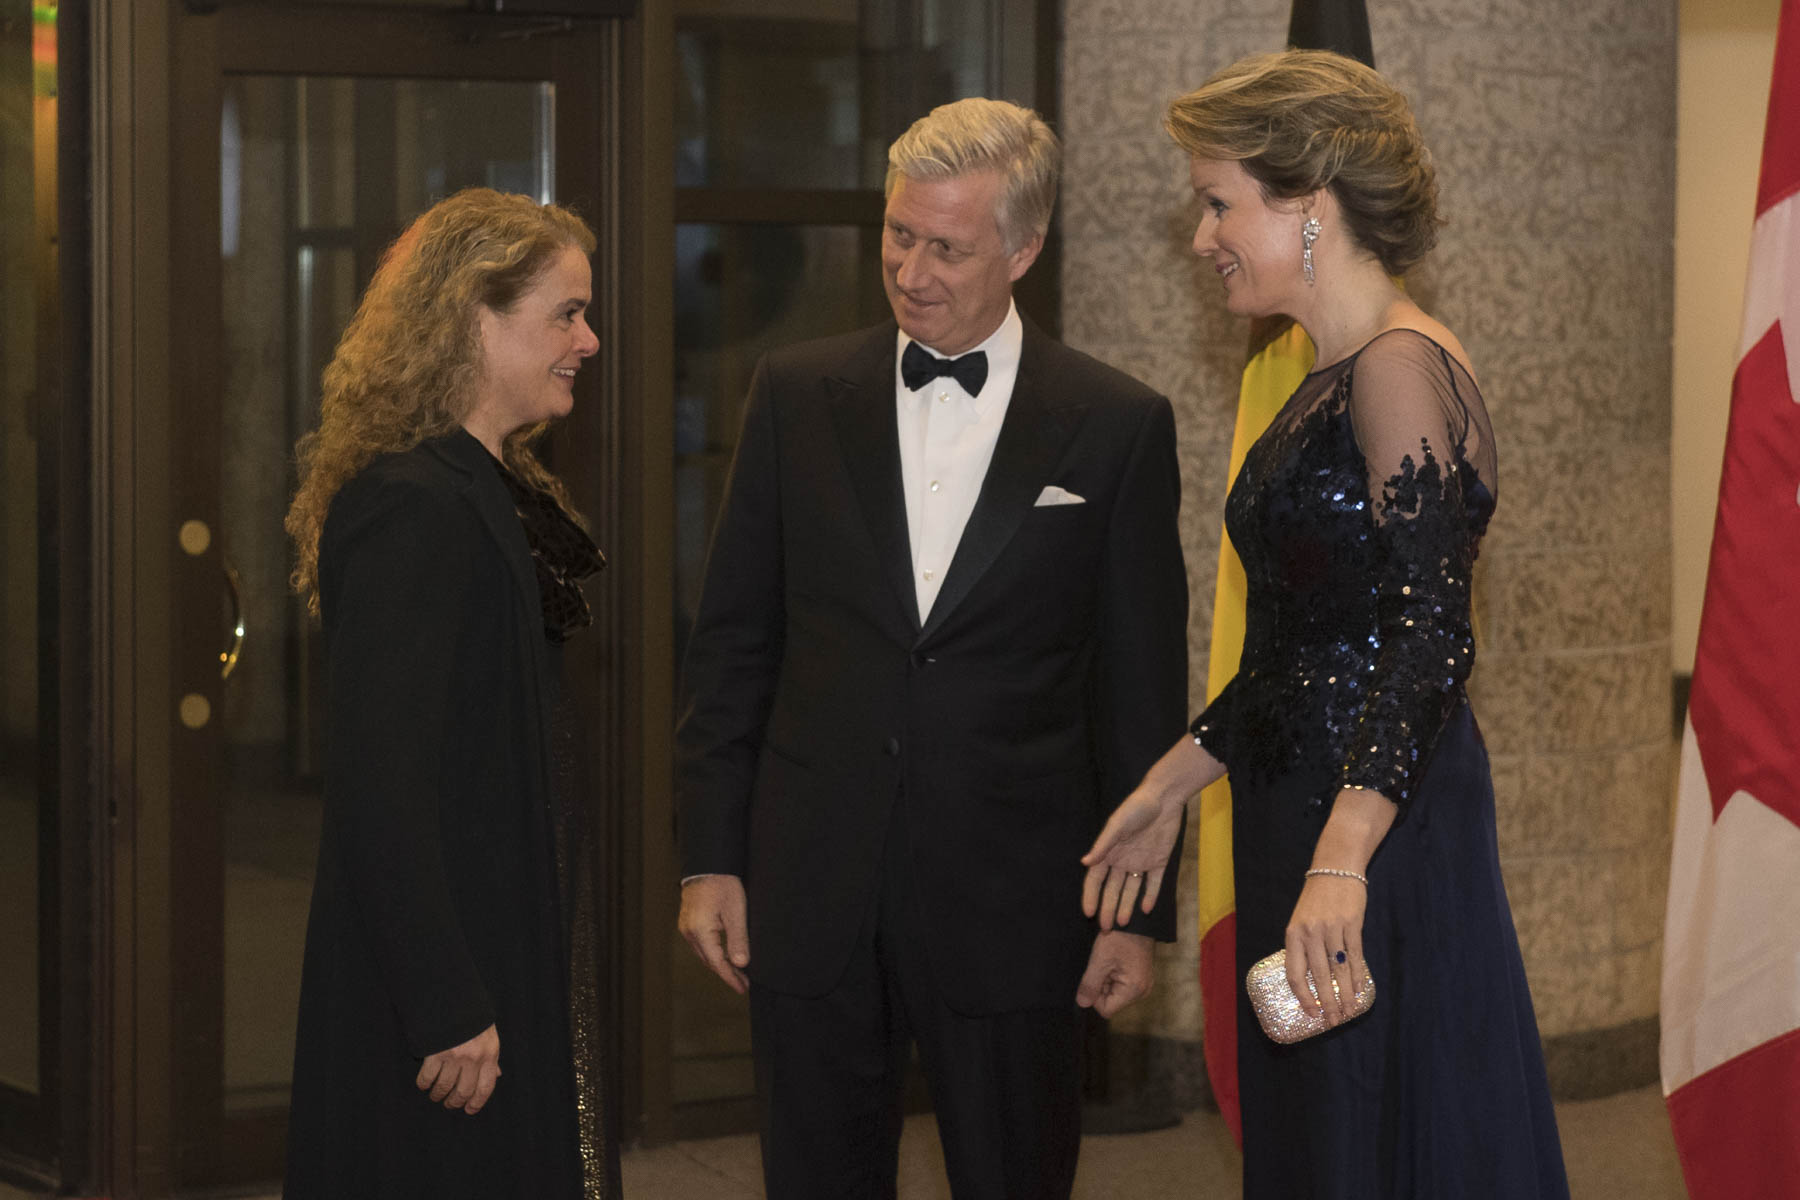 The Governor General attended a concert at the Canadian Museum of History on the occasion of the State Visit to Canada of Their Majesties the King and Queen of the Belgians.